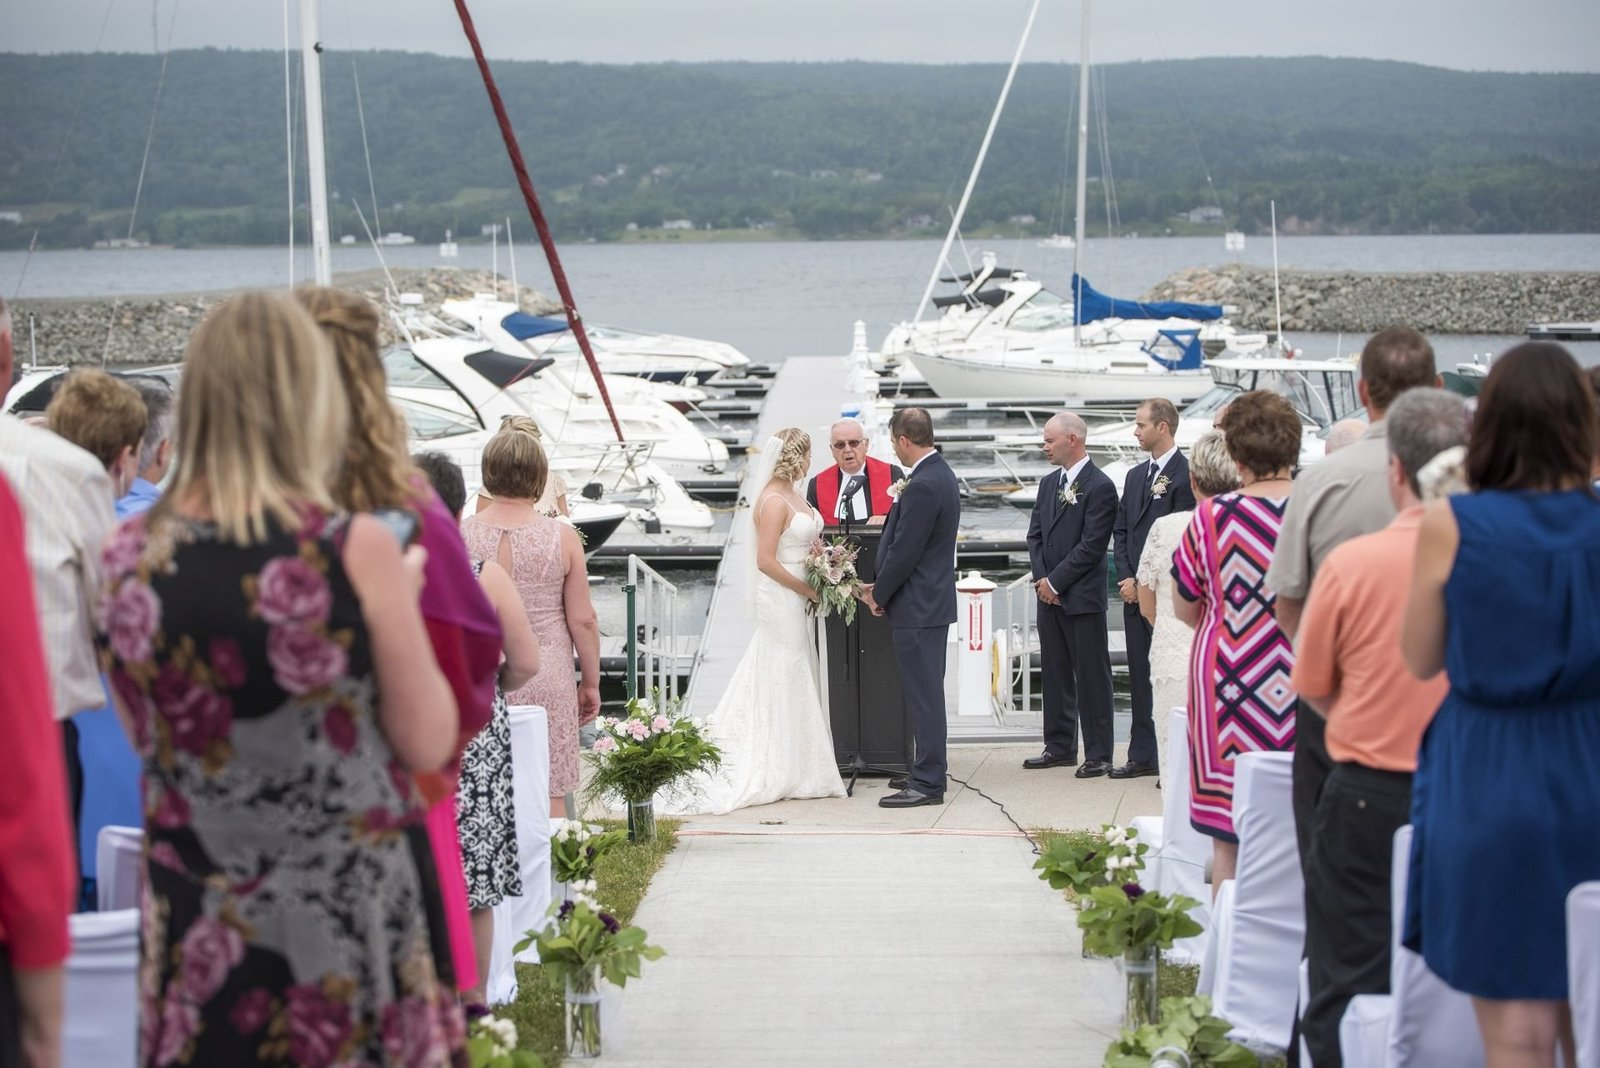 Ben Eoin Yacht Club Wedding - Erica and Andrew